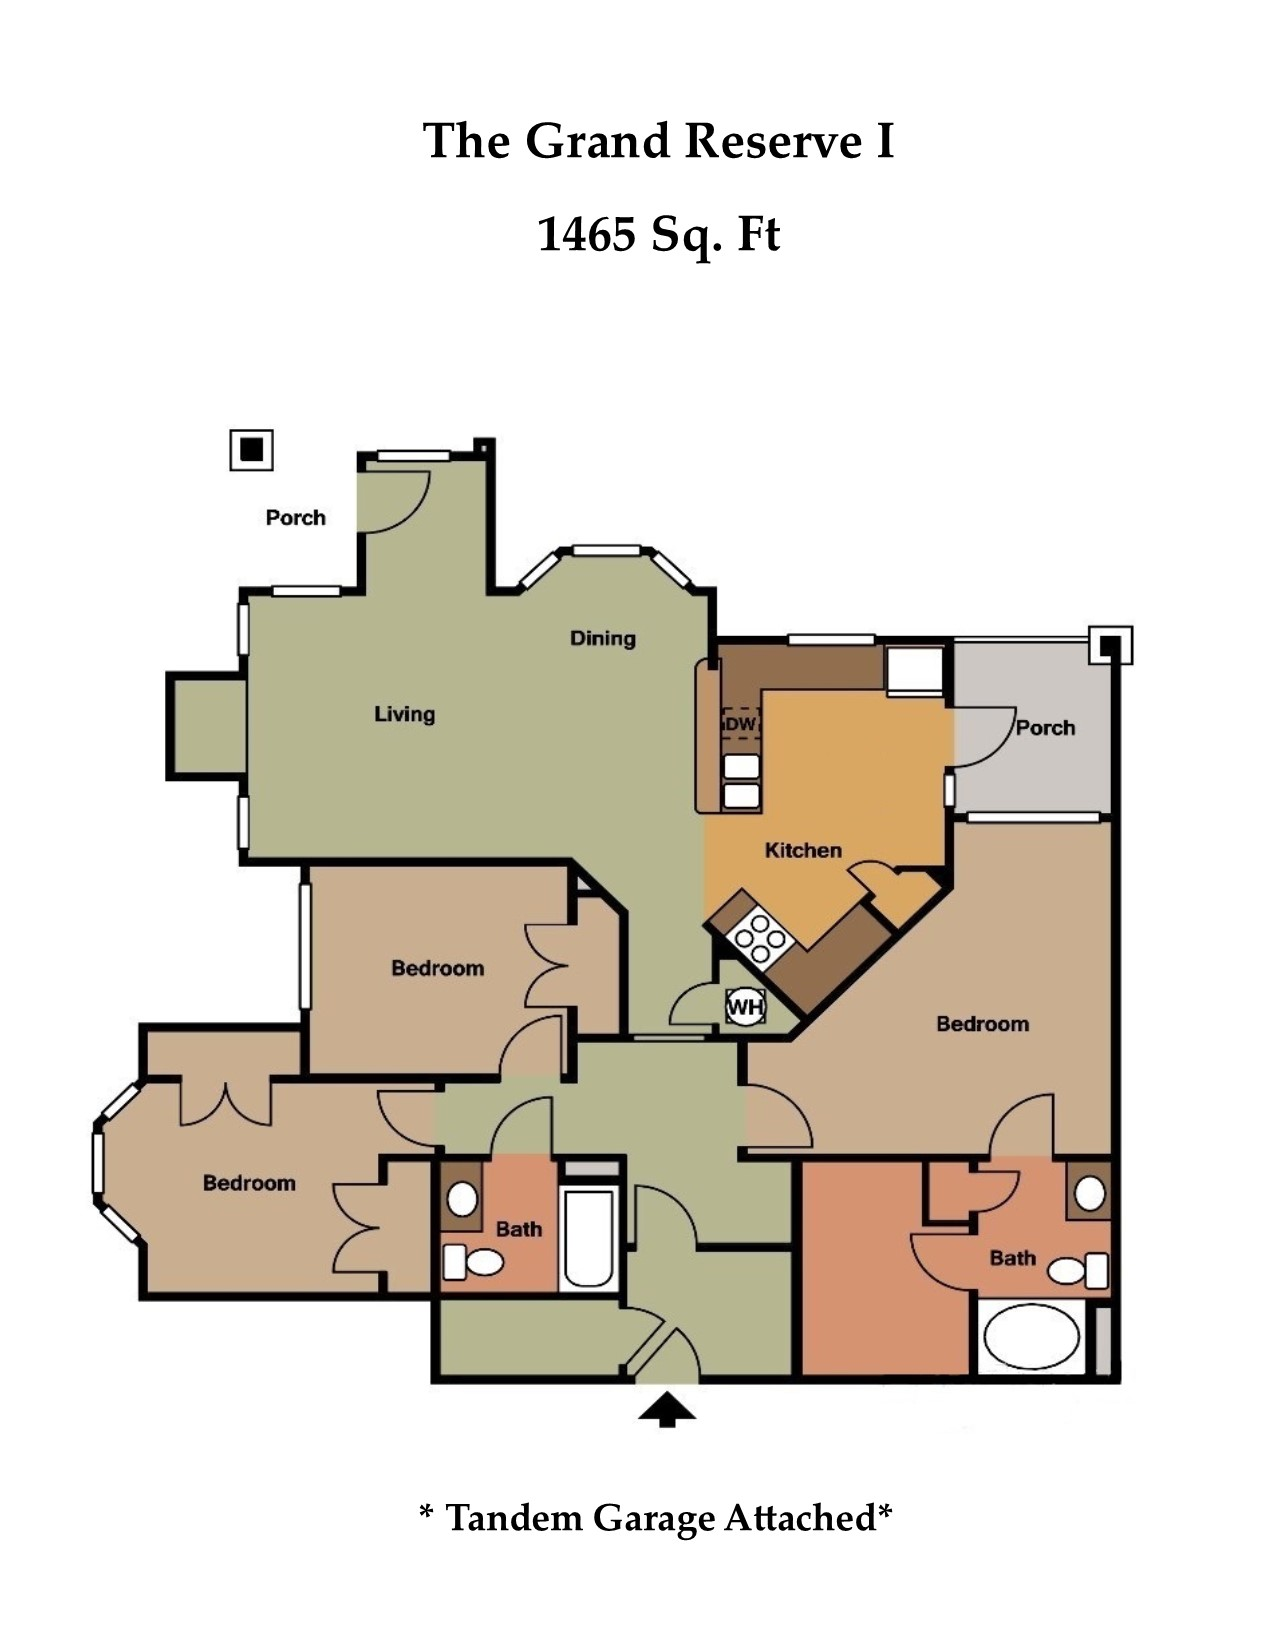 Floorplan - The Grand Reserve I image